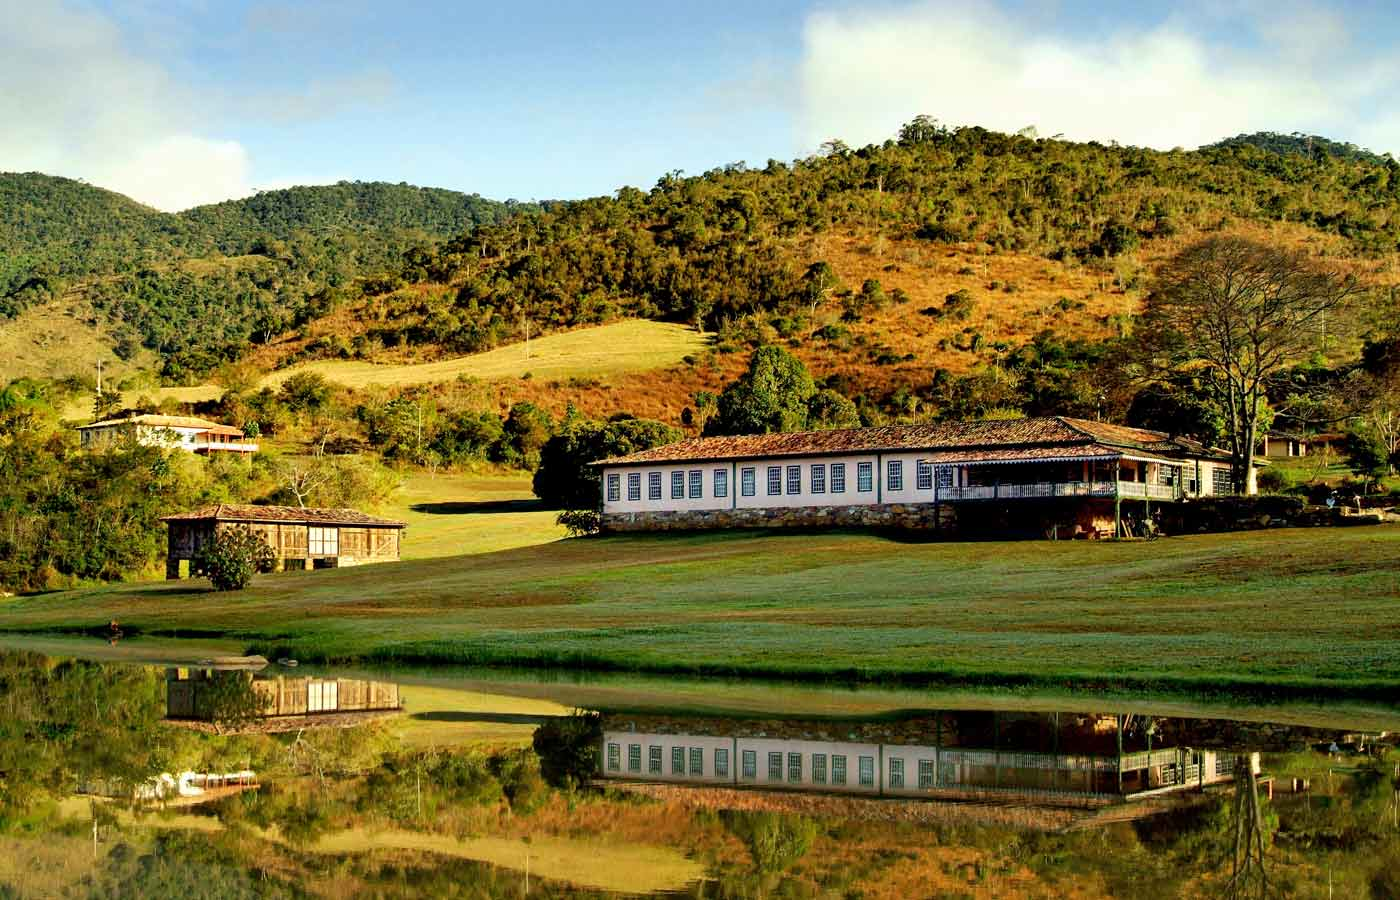 Reserva do Ibitipoca - luxury countryside retreat, Brazil